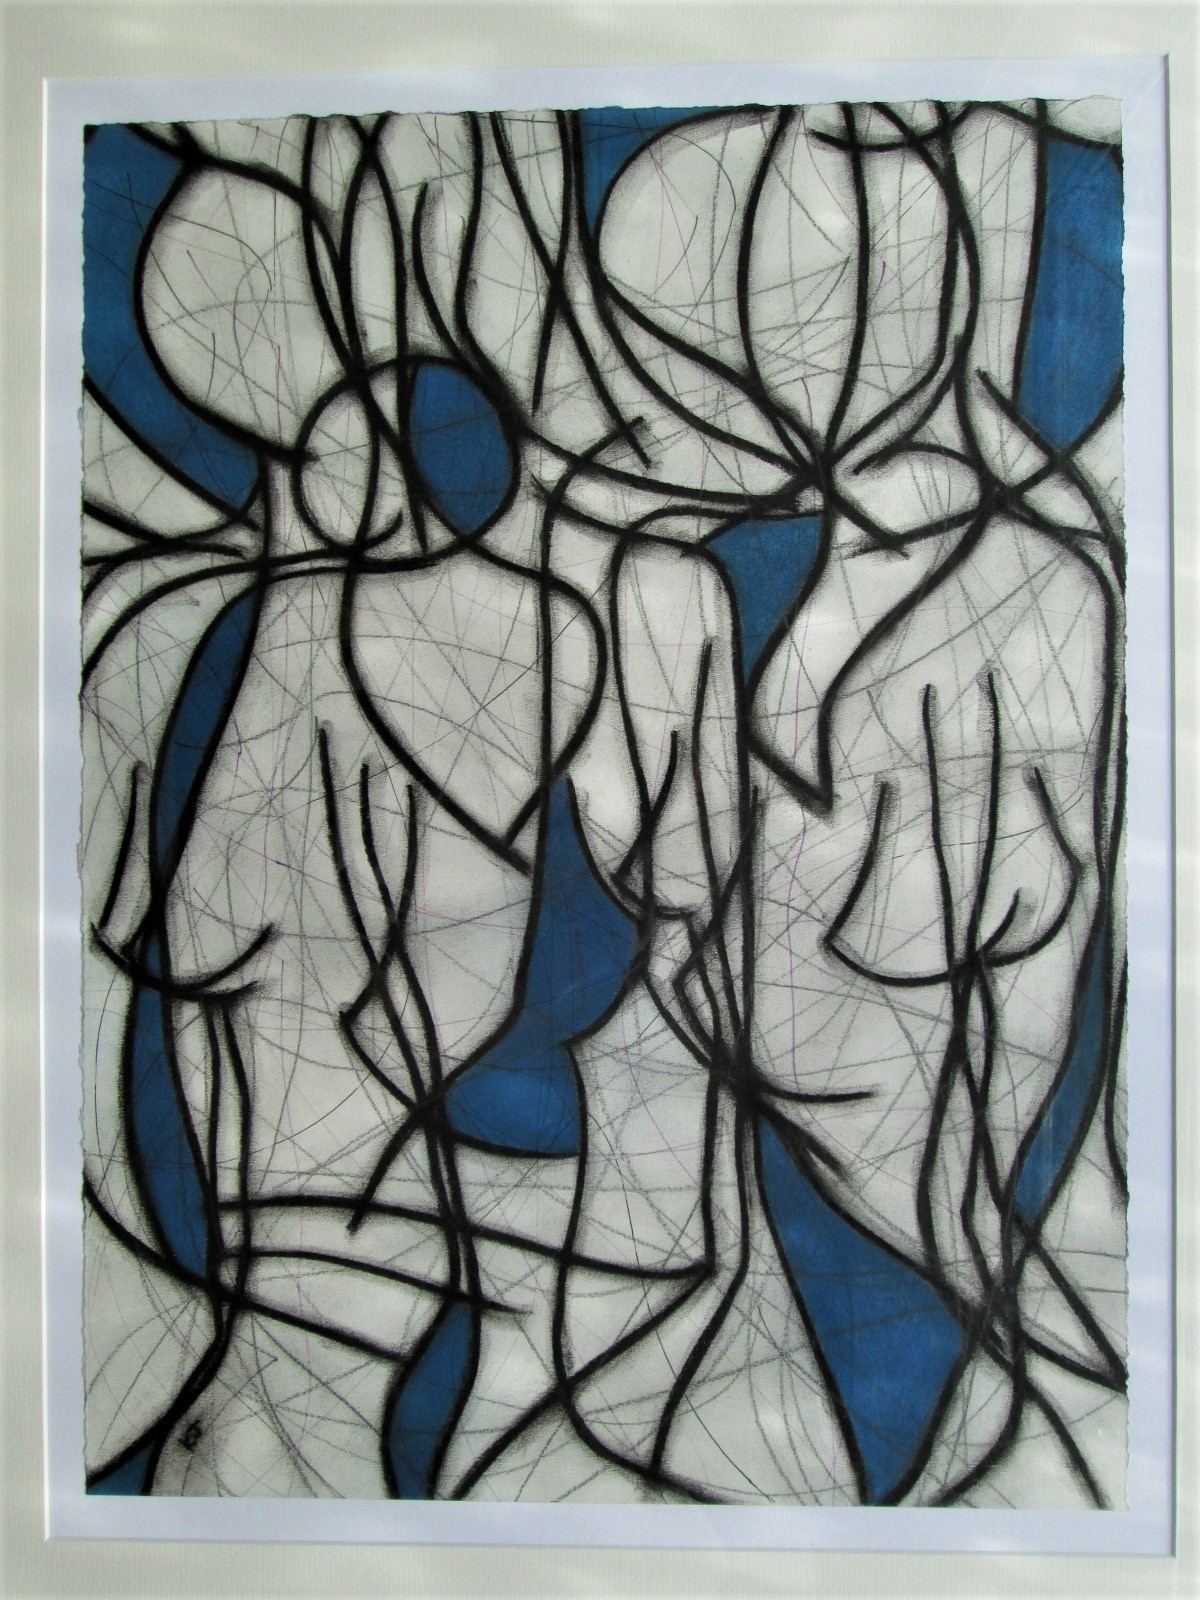 Blue Spaces No 9 artwork by Kevin Jones - art listed for sale on Artplode